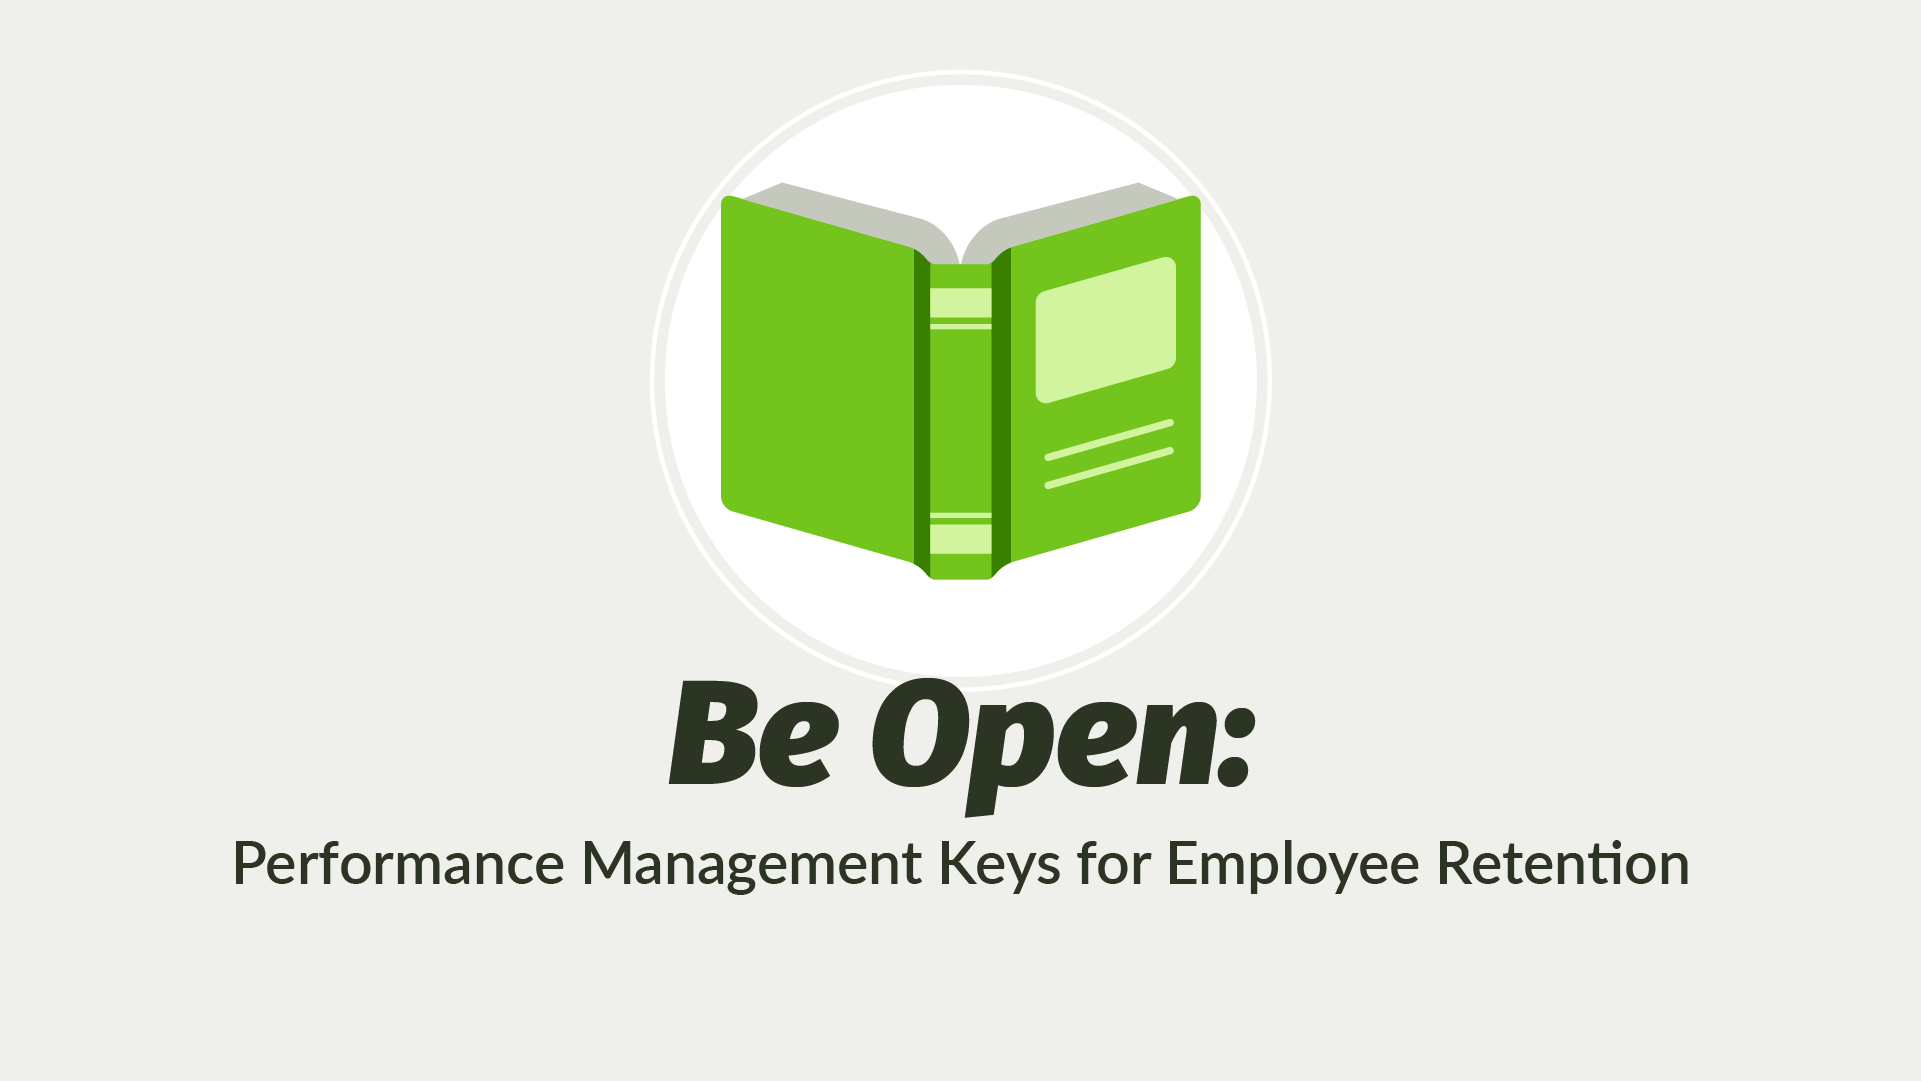 Be Open: Performance Management Keys for Employee Retention